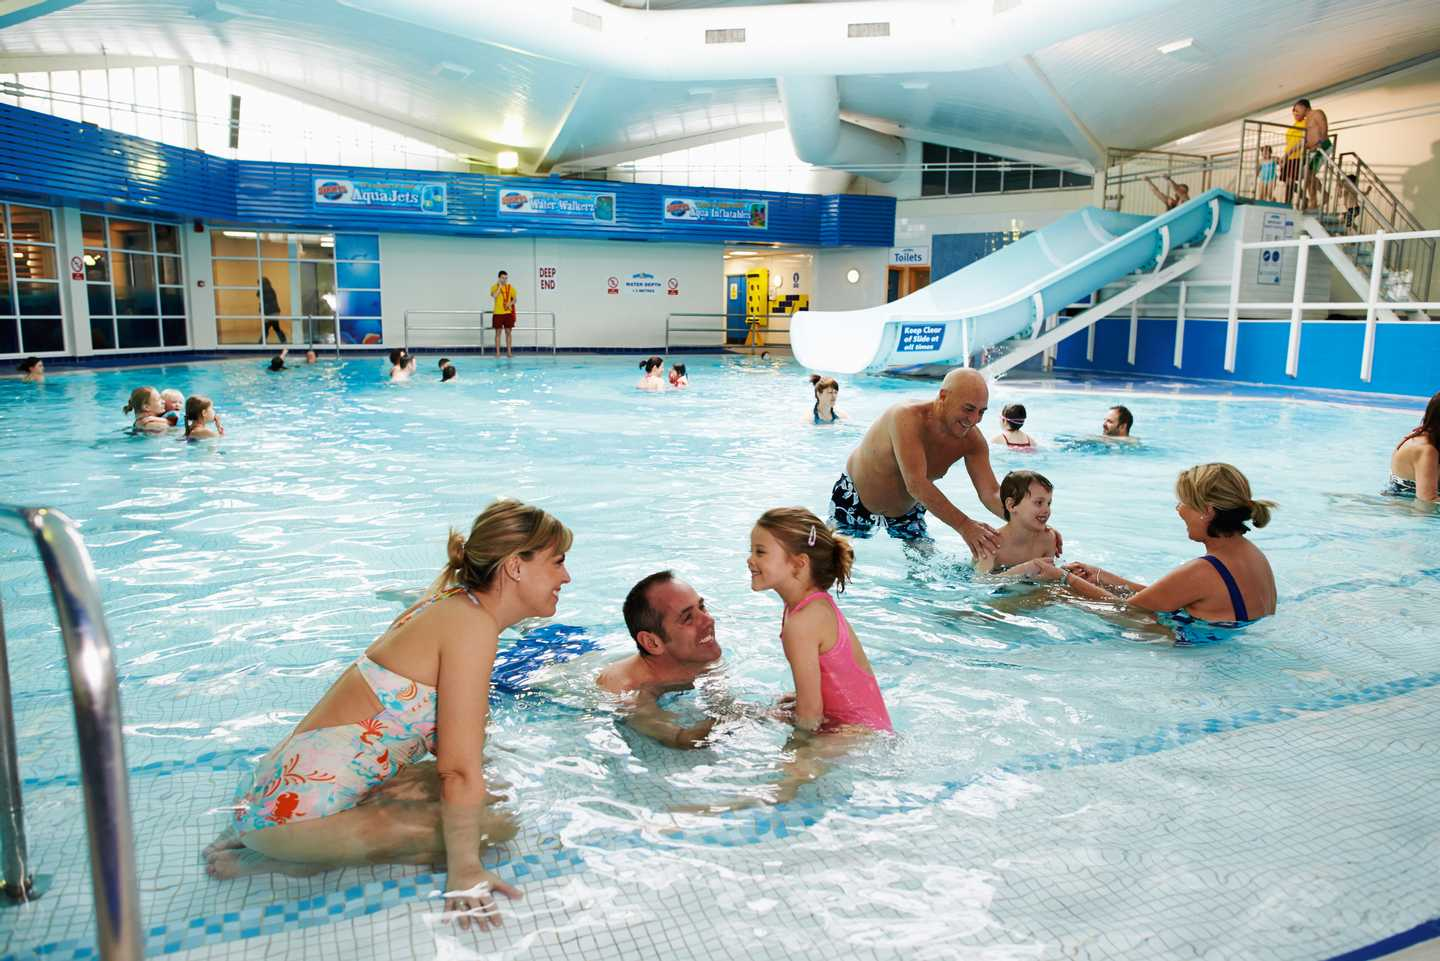 Guests splashing around in the heated indoor pool with slide